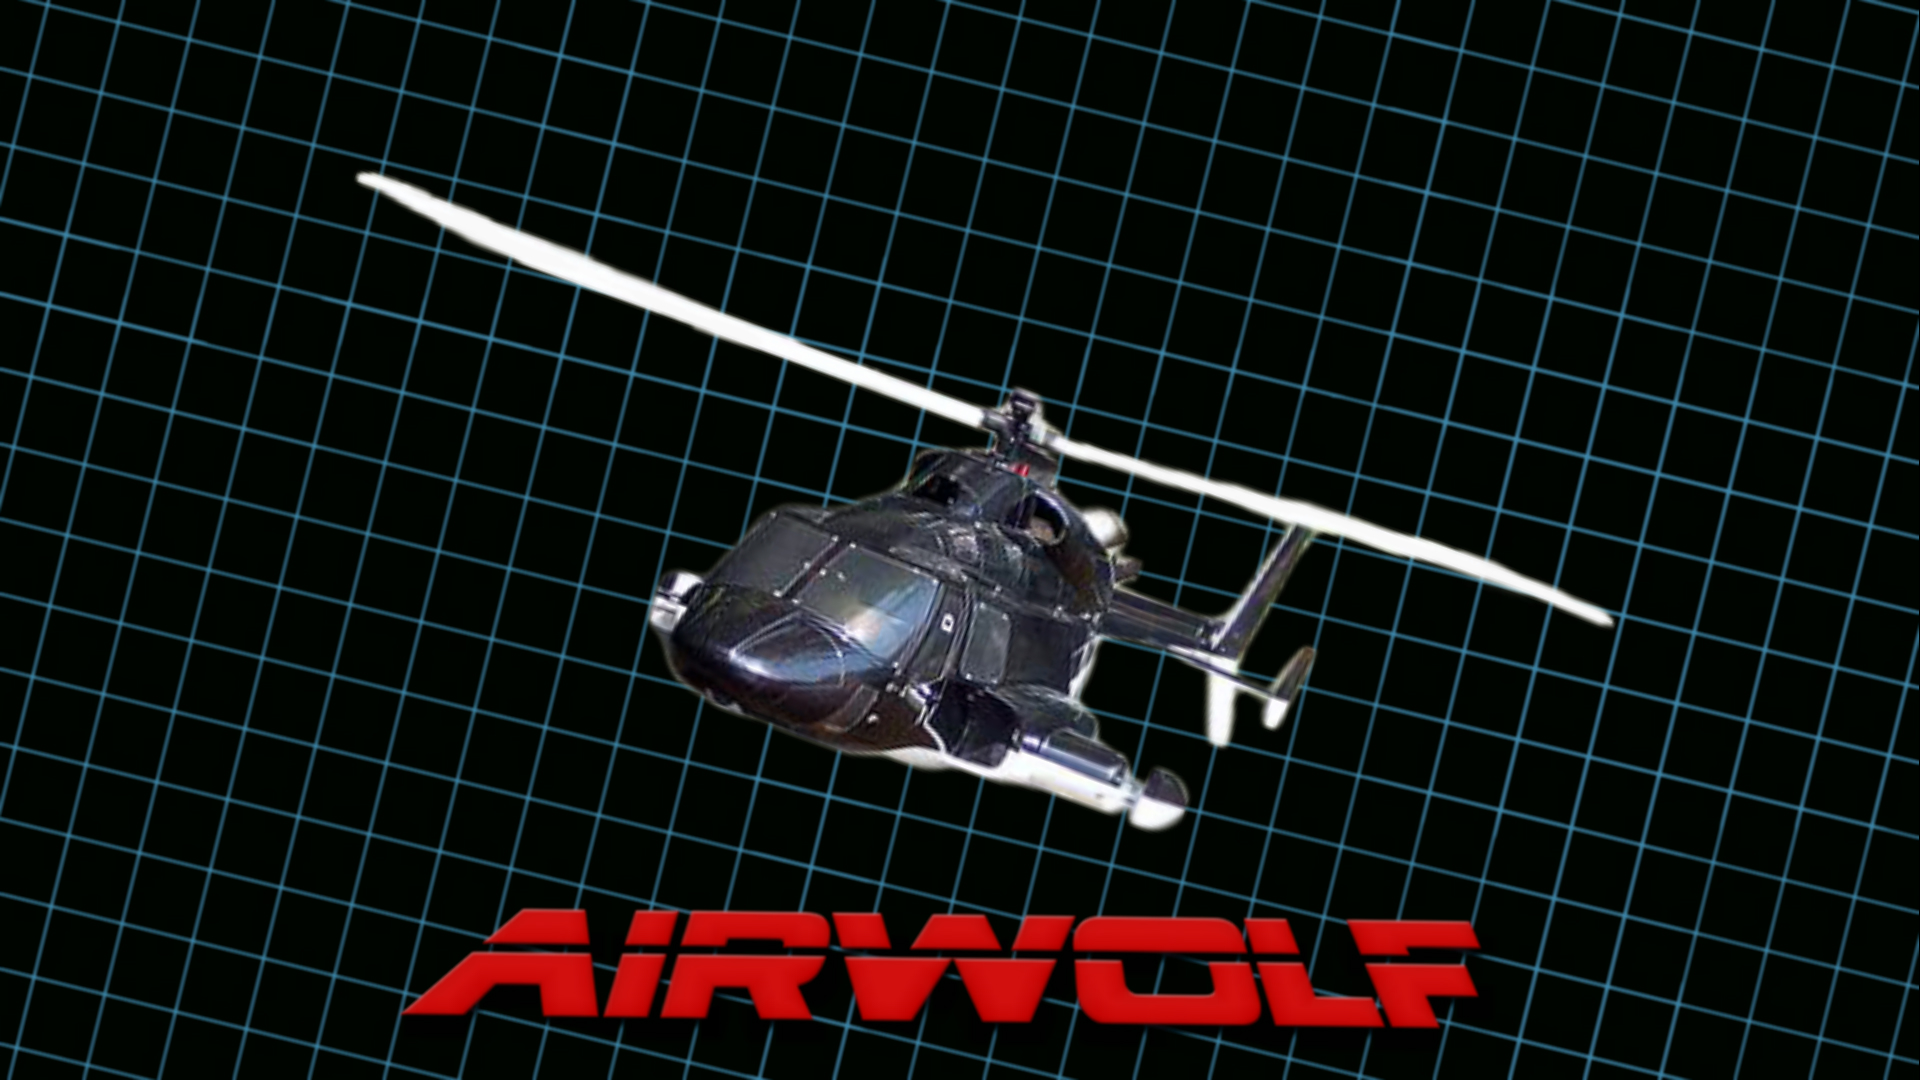 helicopter tv show airwolf with Big on The Tragic Downfall Of 80s Heartthrob Jan Michael Vincent in addition Airwolf Bell 222 Helicopter moreover Whatever Happened Airwolf likewise Airwolf 1986 Day Of Jeopardy And Desperate Monday together with Smart House Print Ad Disney.